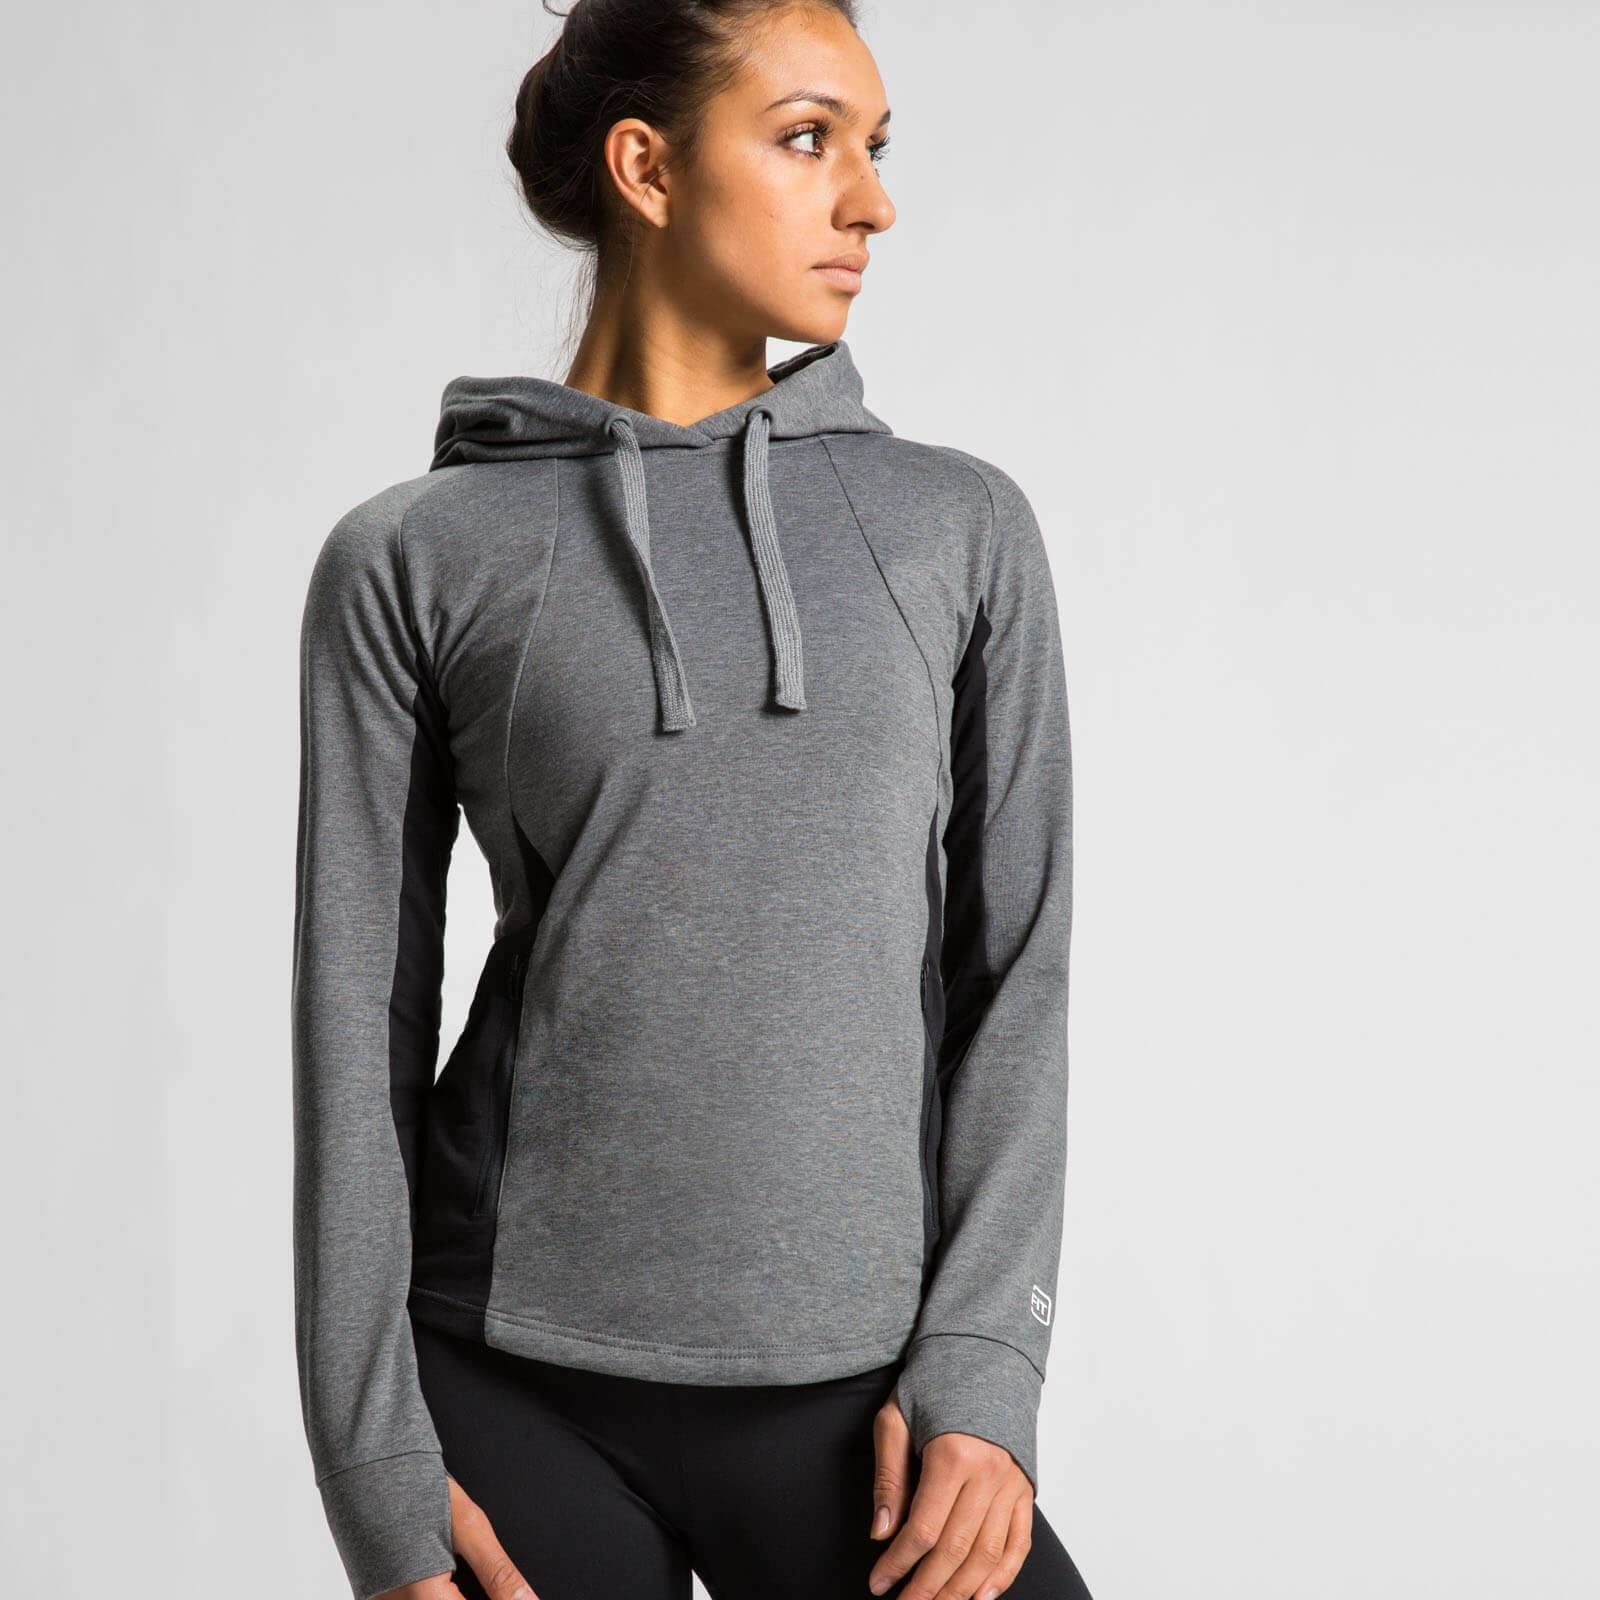 IdealFit Superlite Pullover Hoodie - Charcoal - S - Charcoal